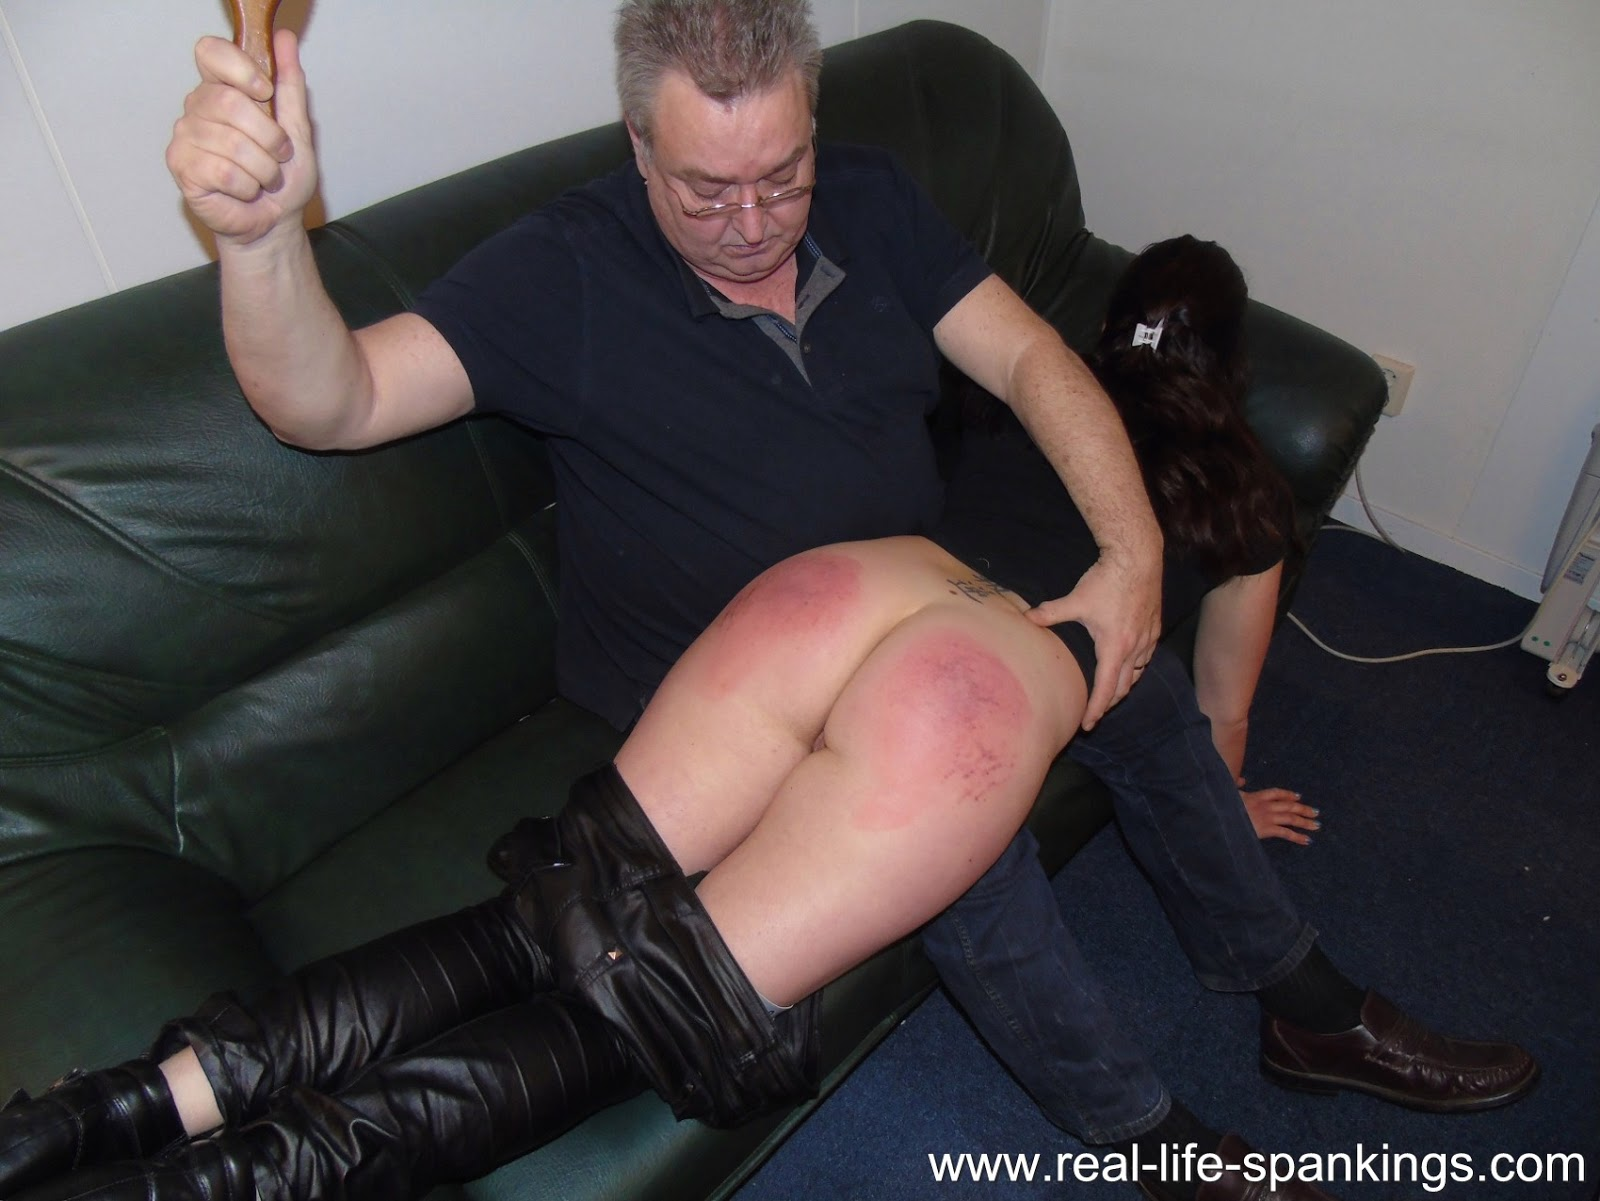 real life spanking